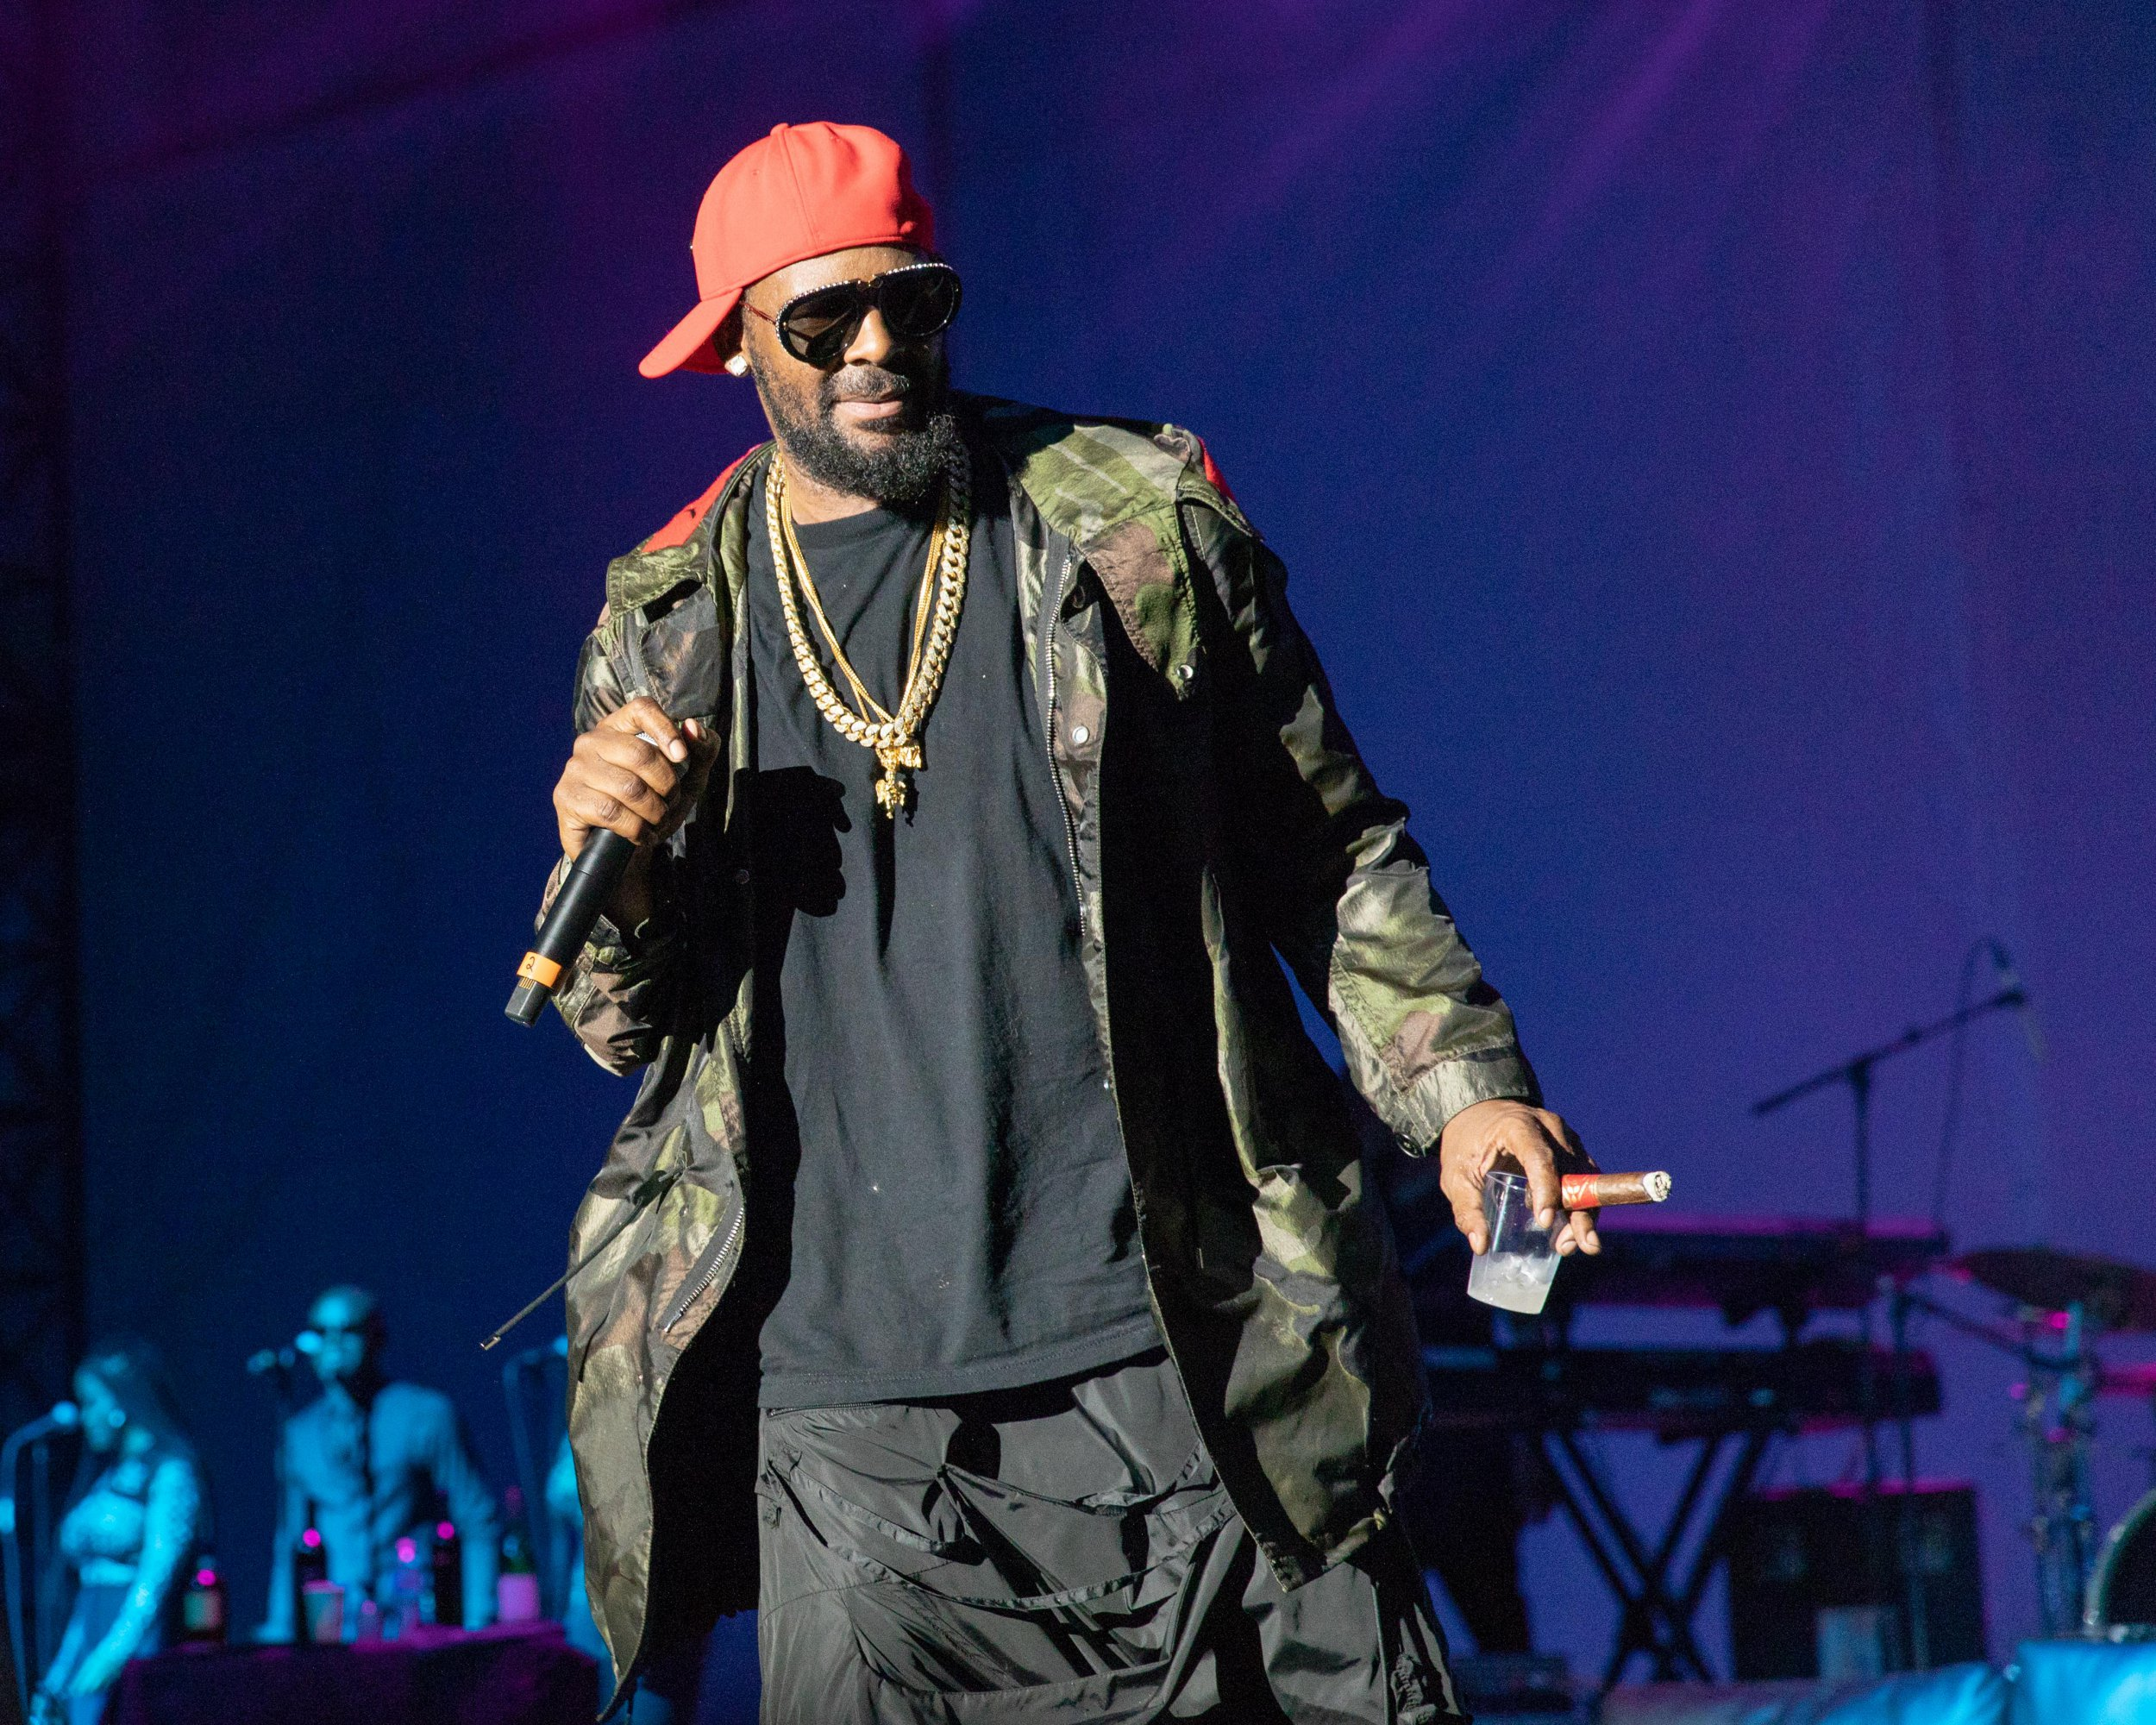 Mandatory Credit: Photo by Daniel Deslover/Zuma Wire/REX/Shutterstock (9762341ch) R. Kelly V103 Summer Block Party, Chicago, USA - 14 Jul 2018